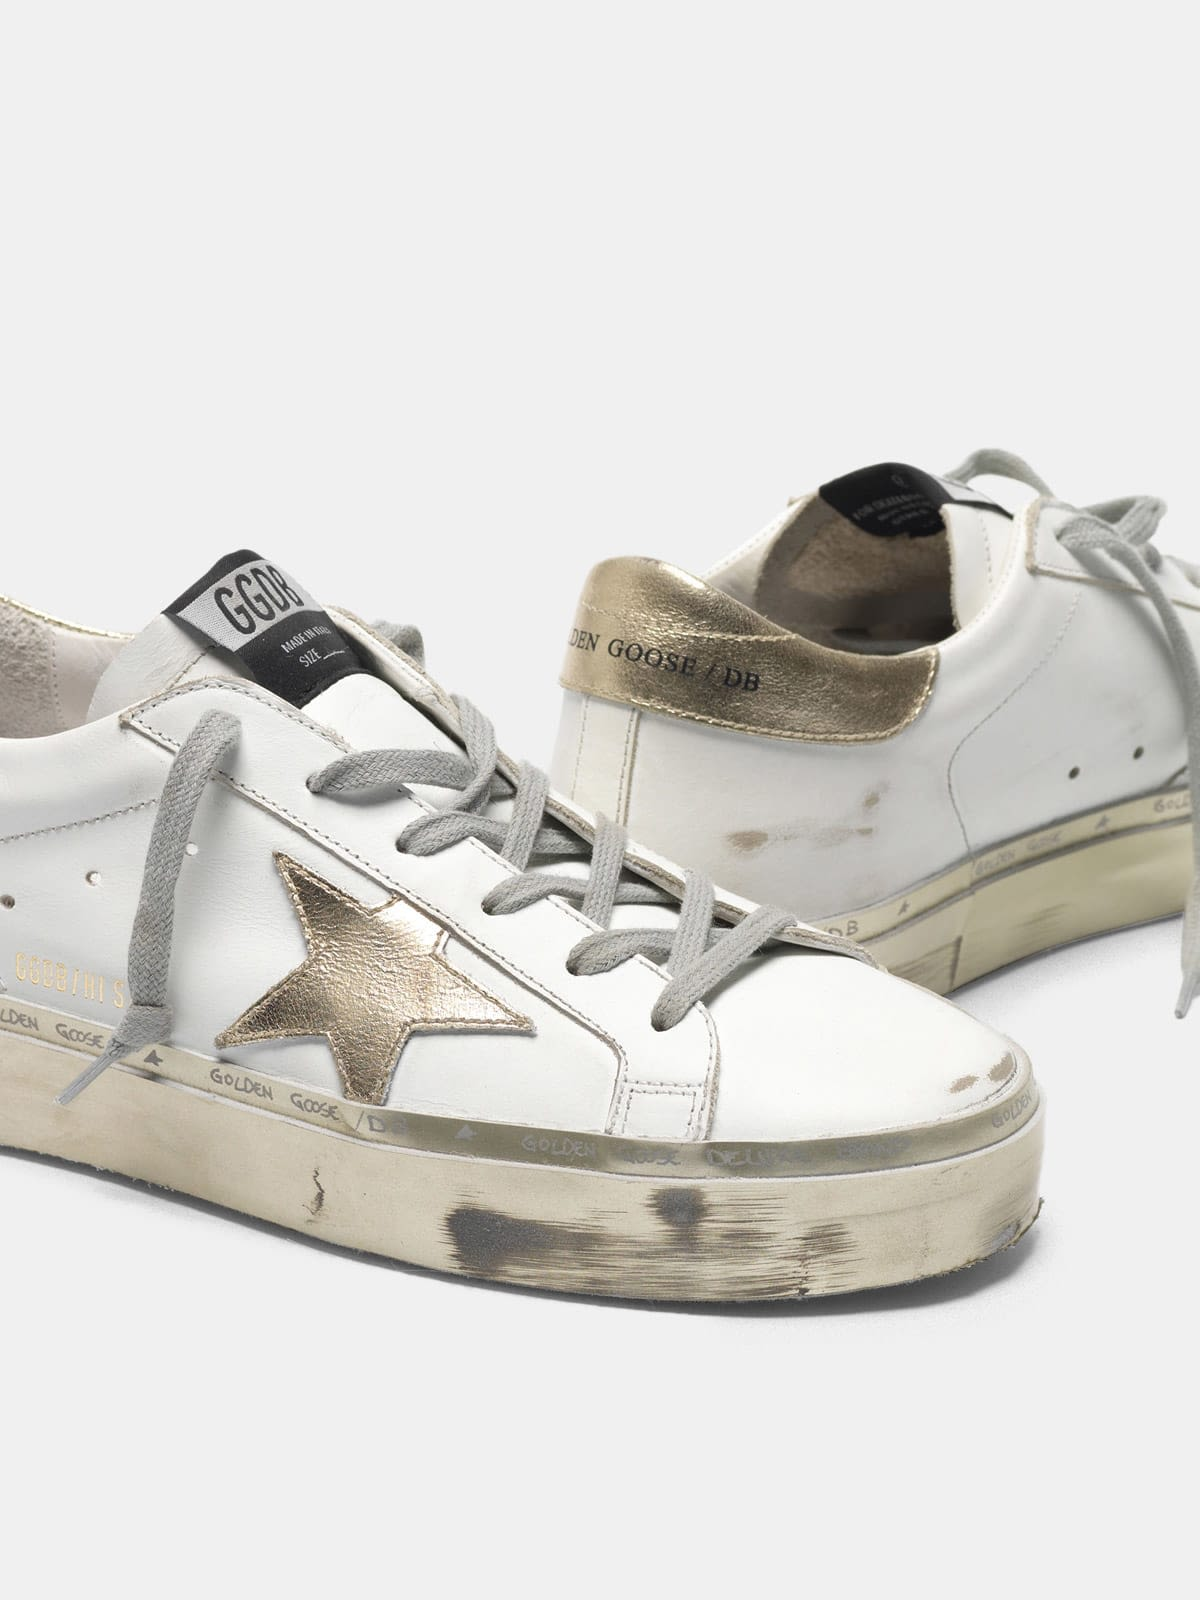 White and gold Hi-Star sneakers with sparkle foxing